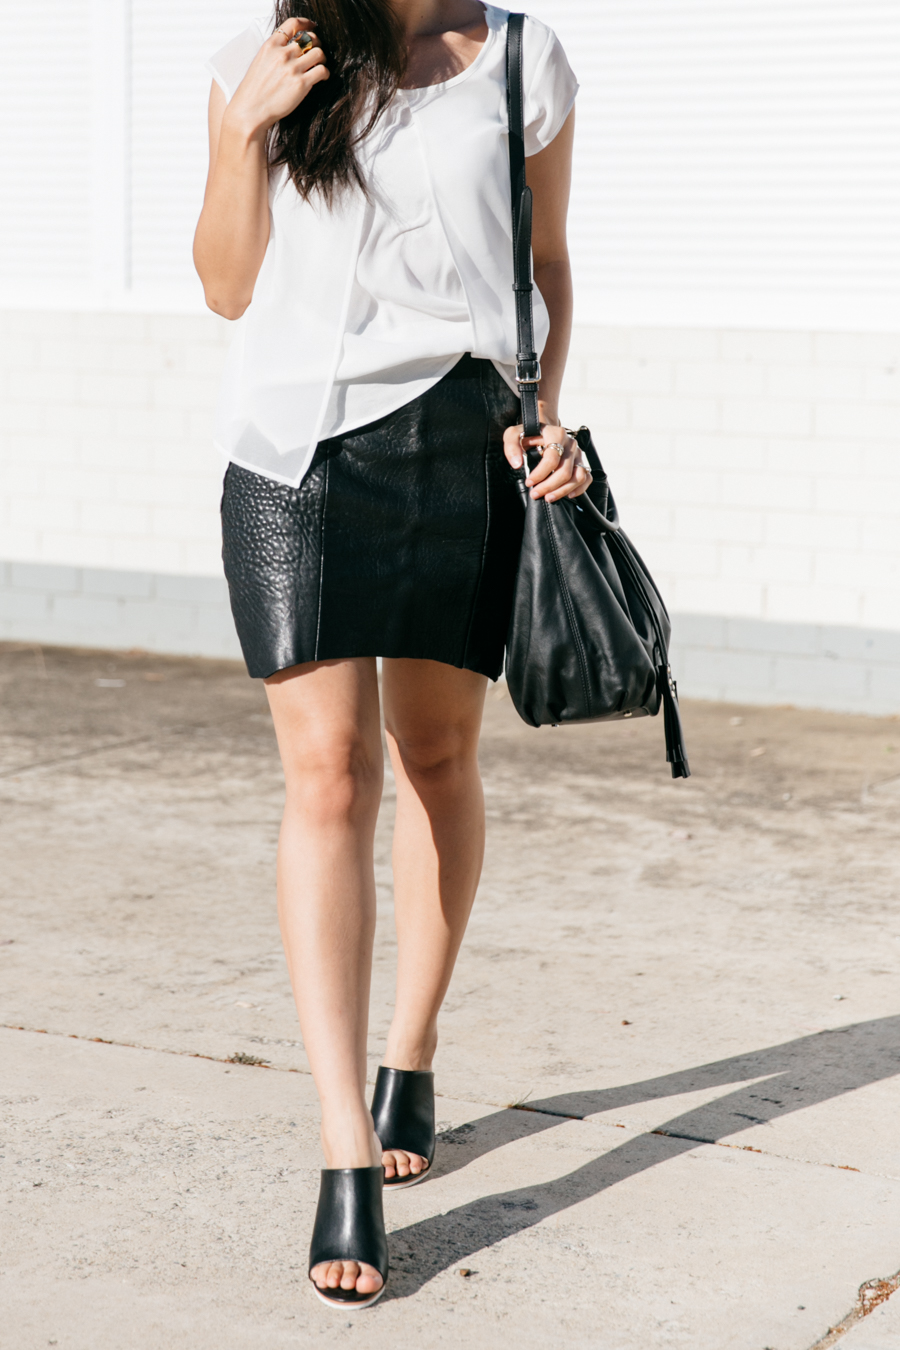 Jeanswest top outfit with black leather skirt.